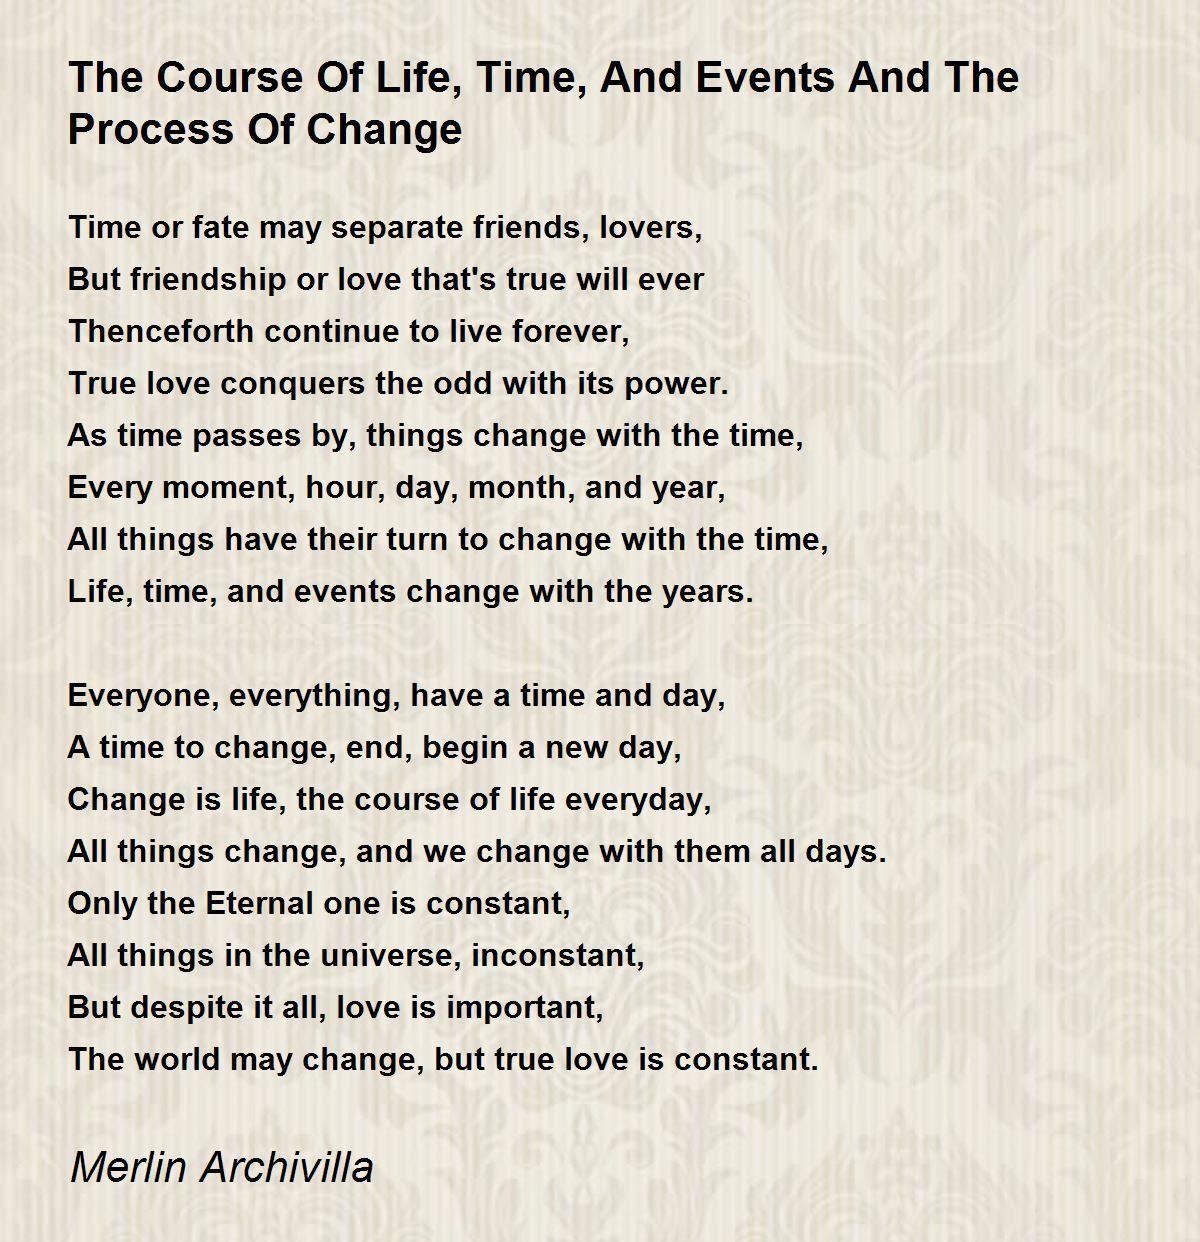 The Course Of Life Time And Events And The Process Of Change Poem